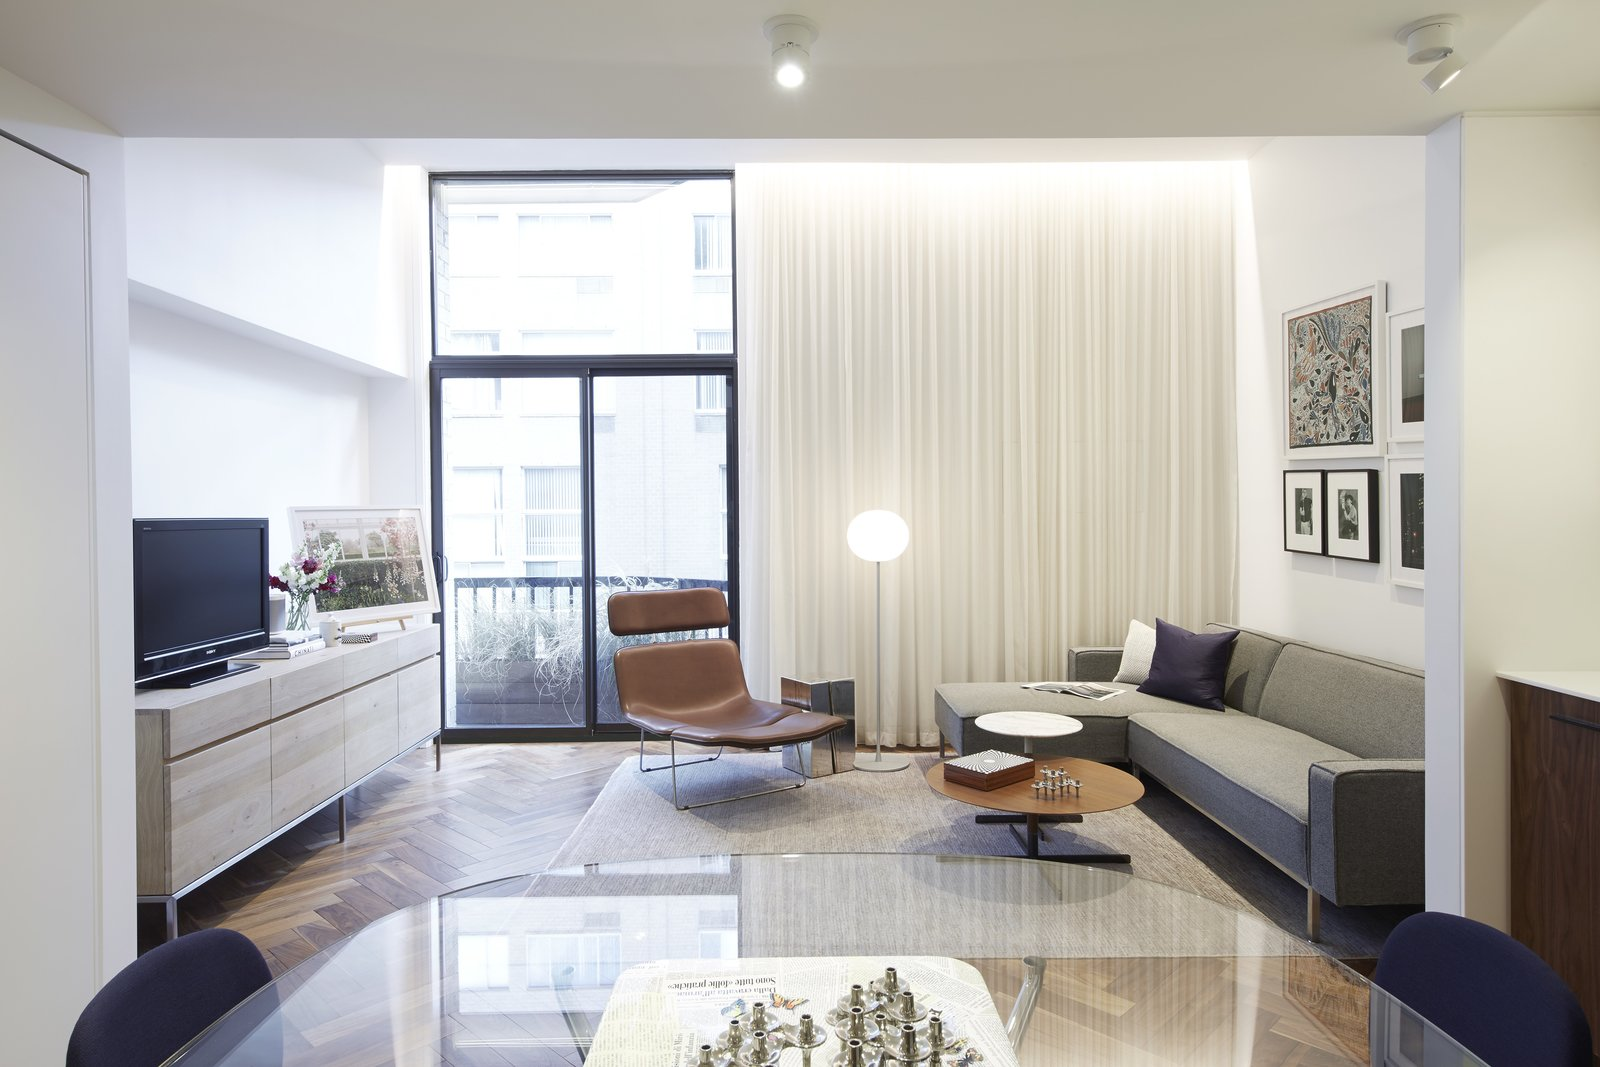 Photo 1 of 11 in In Just 450 Square Feet, A New York Architect Crafts a Multifunctional Apartment of His Own